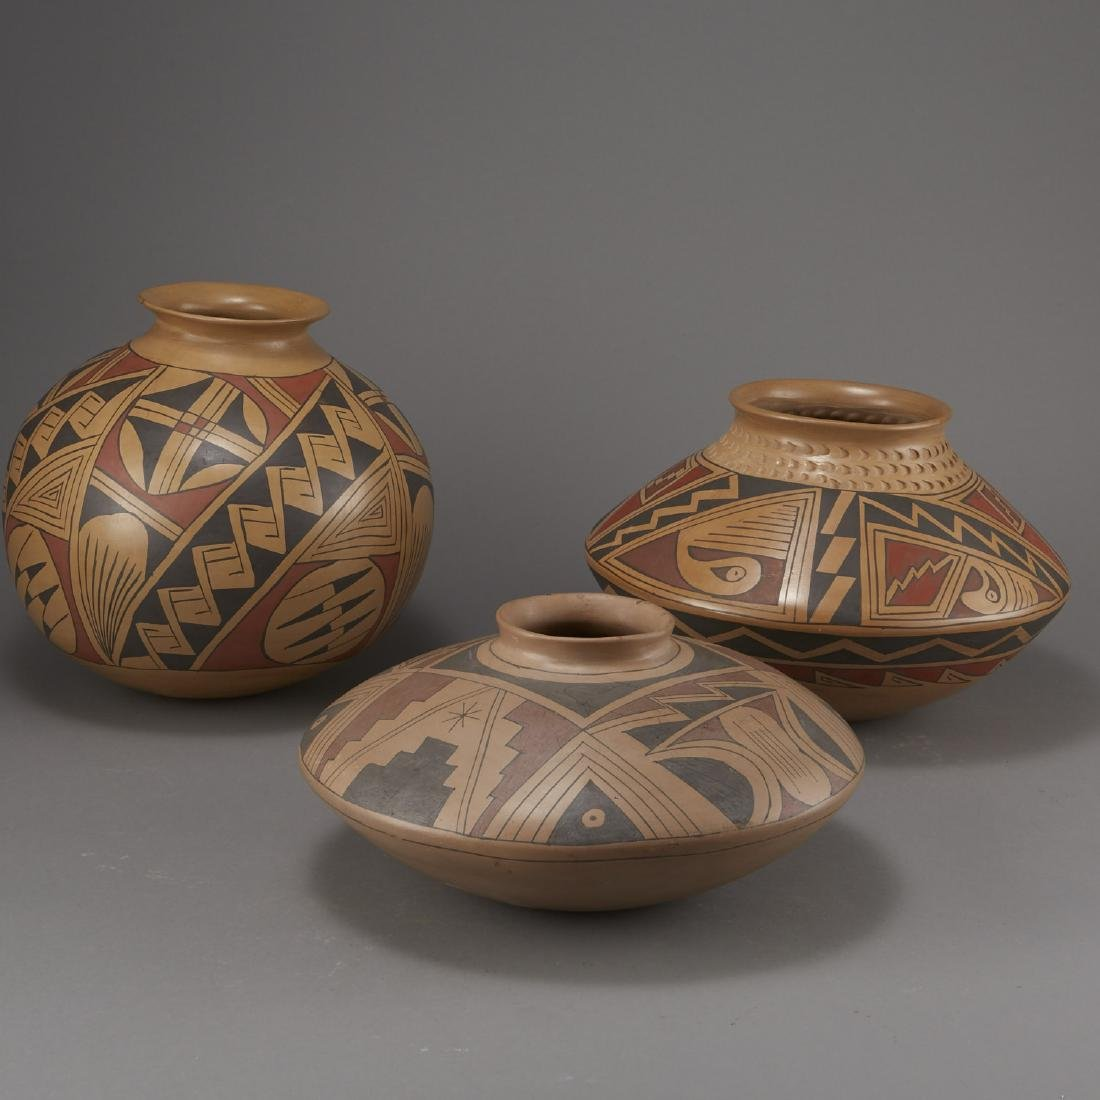 Group of 3 Large Polychrome Pottery Jars - 2